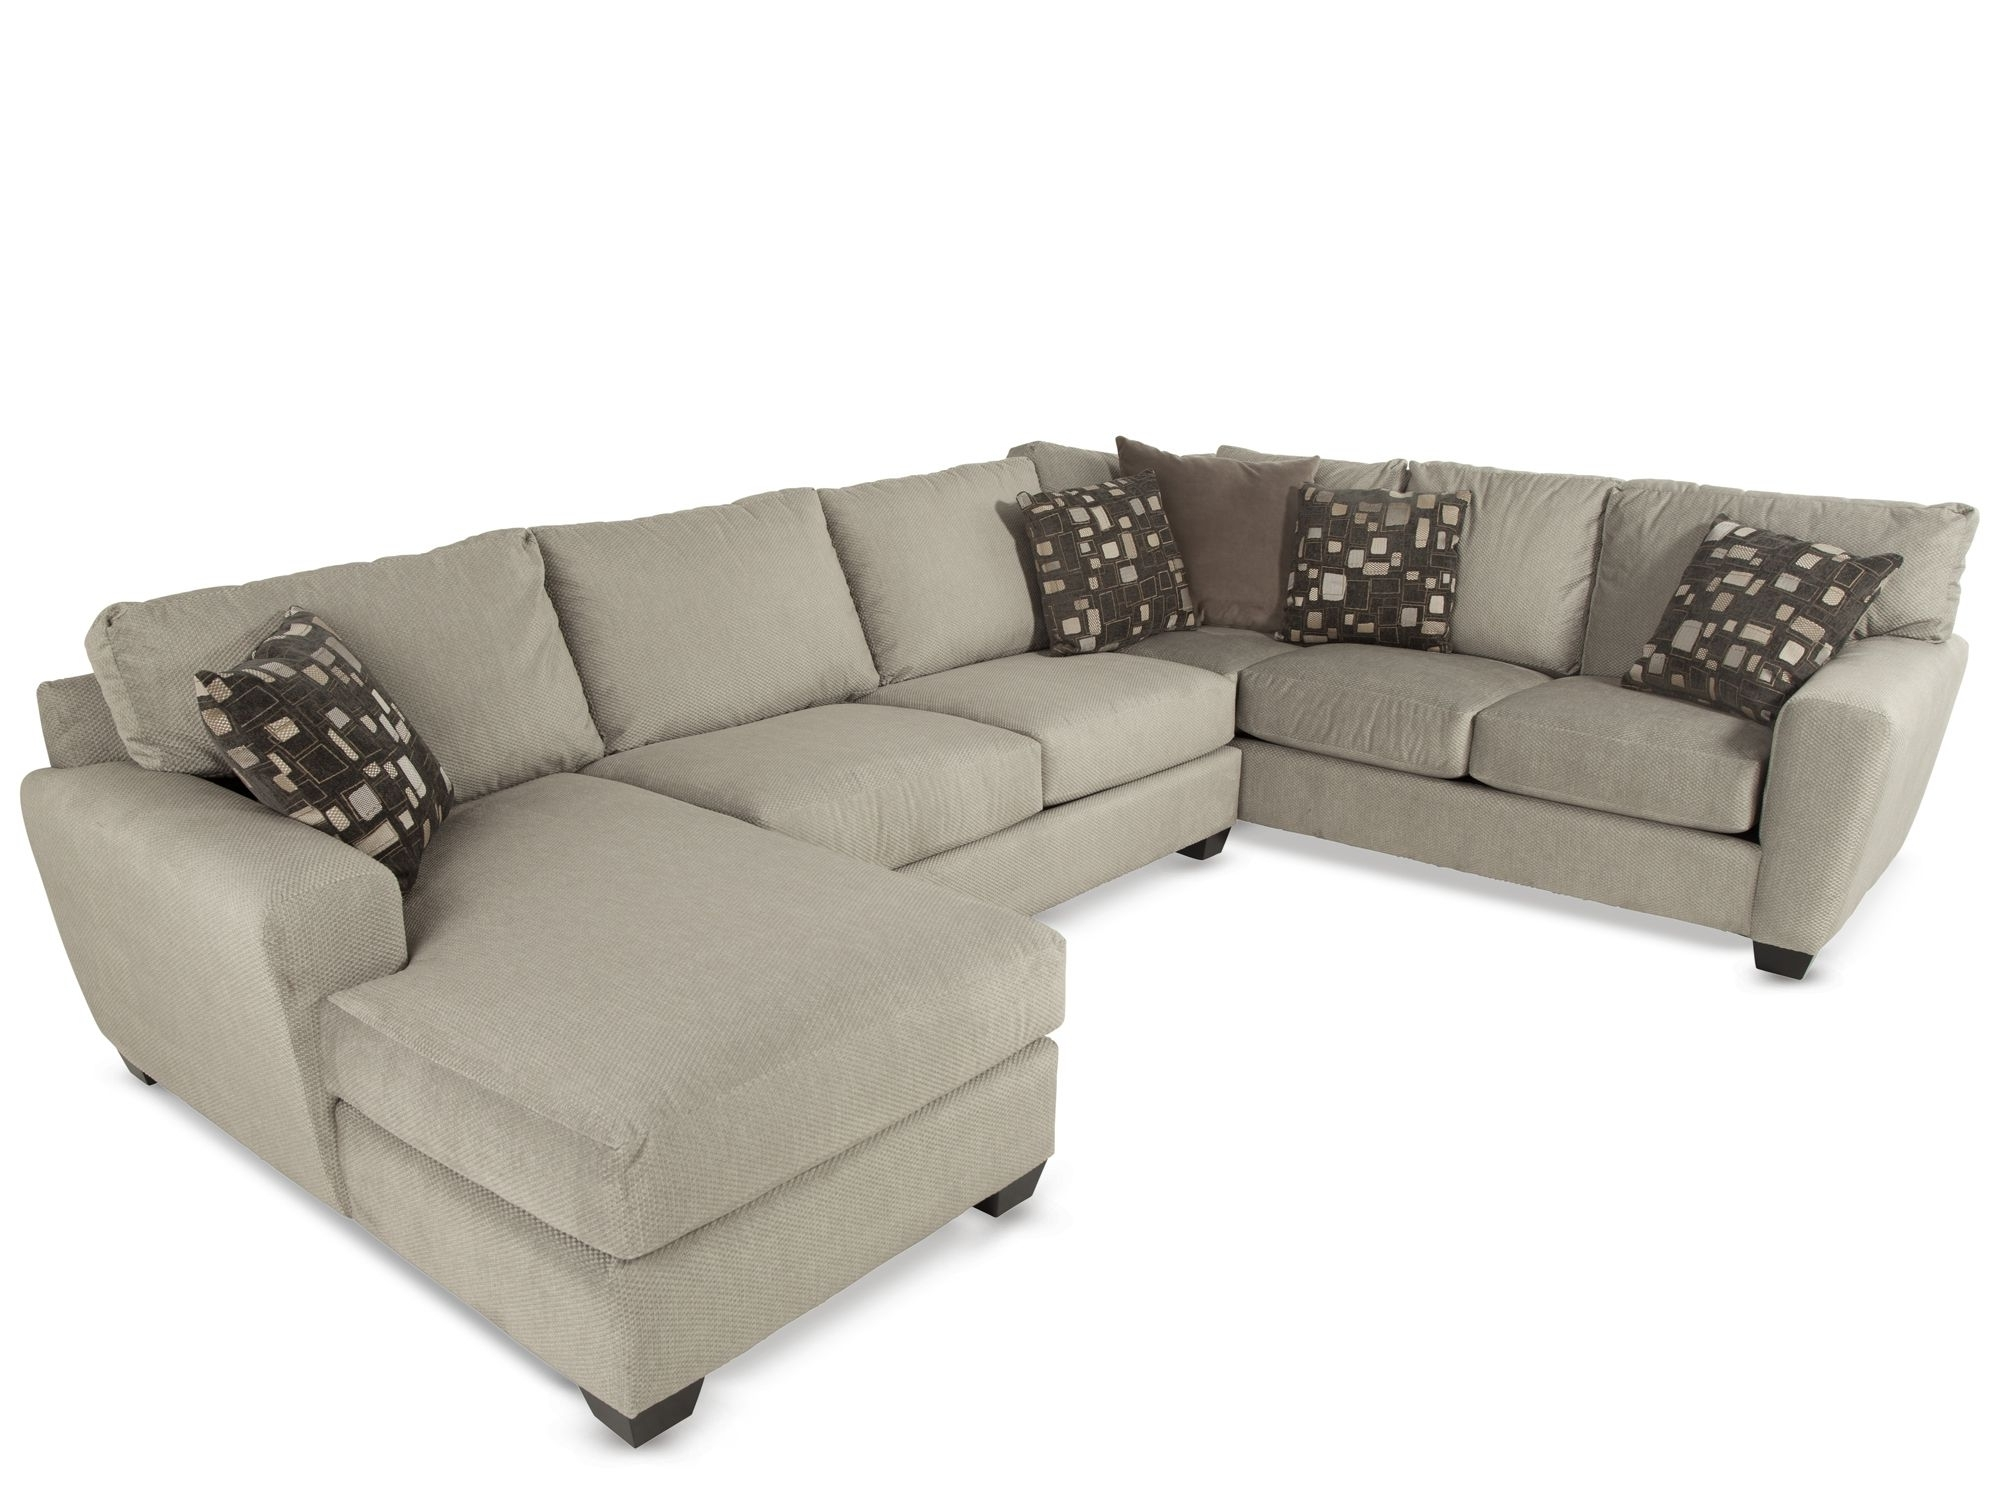 Pinterest Intended For Well Liked St Louis Sectional Sofas (View 7 of 20)